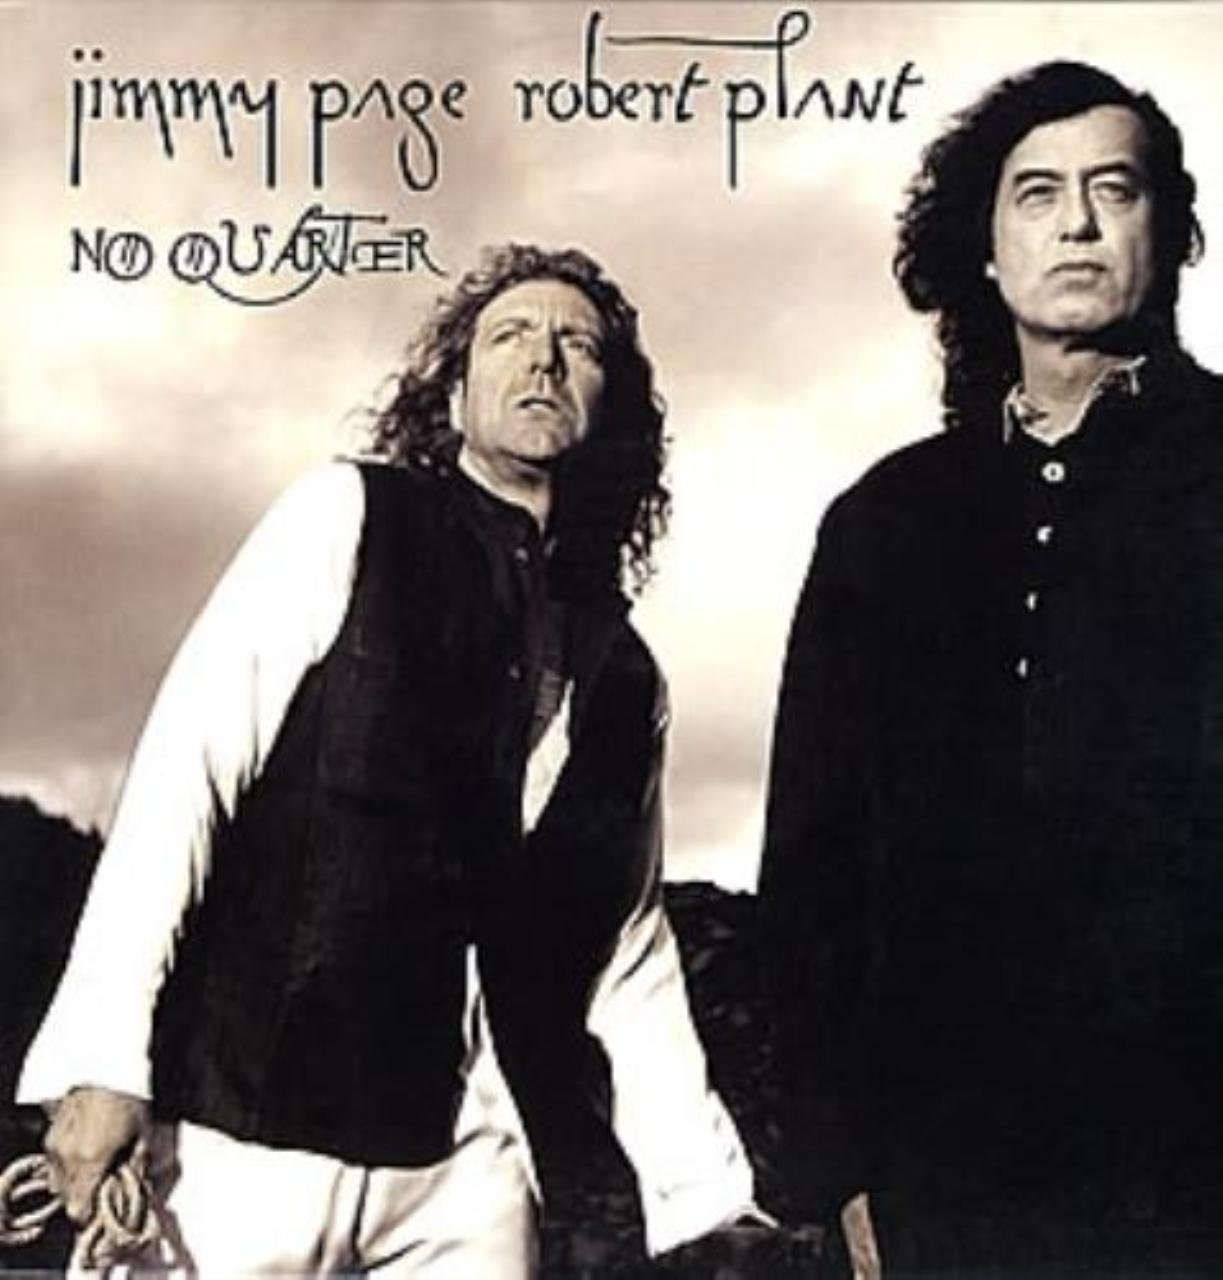 No Quarter: Jimmy Page & Robert Plant Unledded [Vinyl] by Atlantic